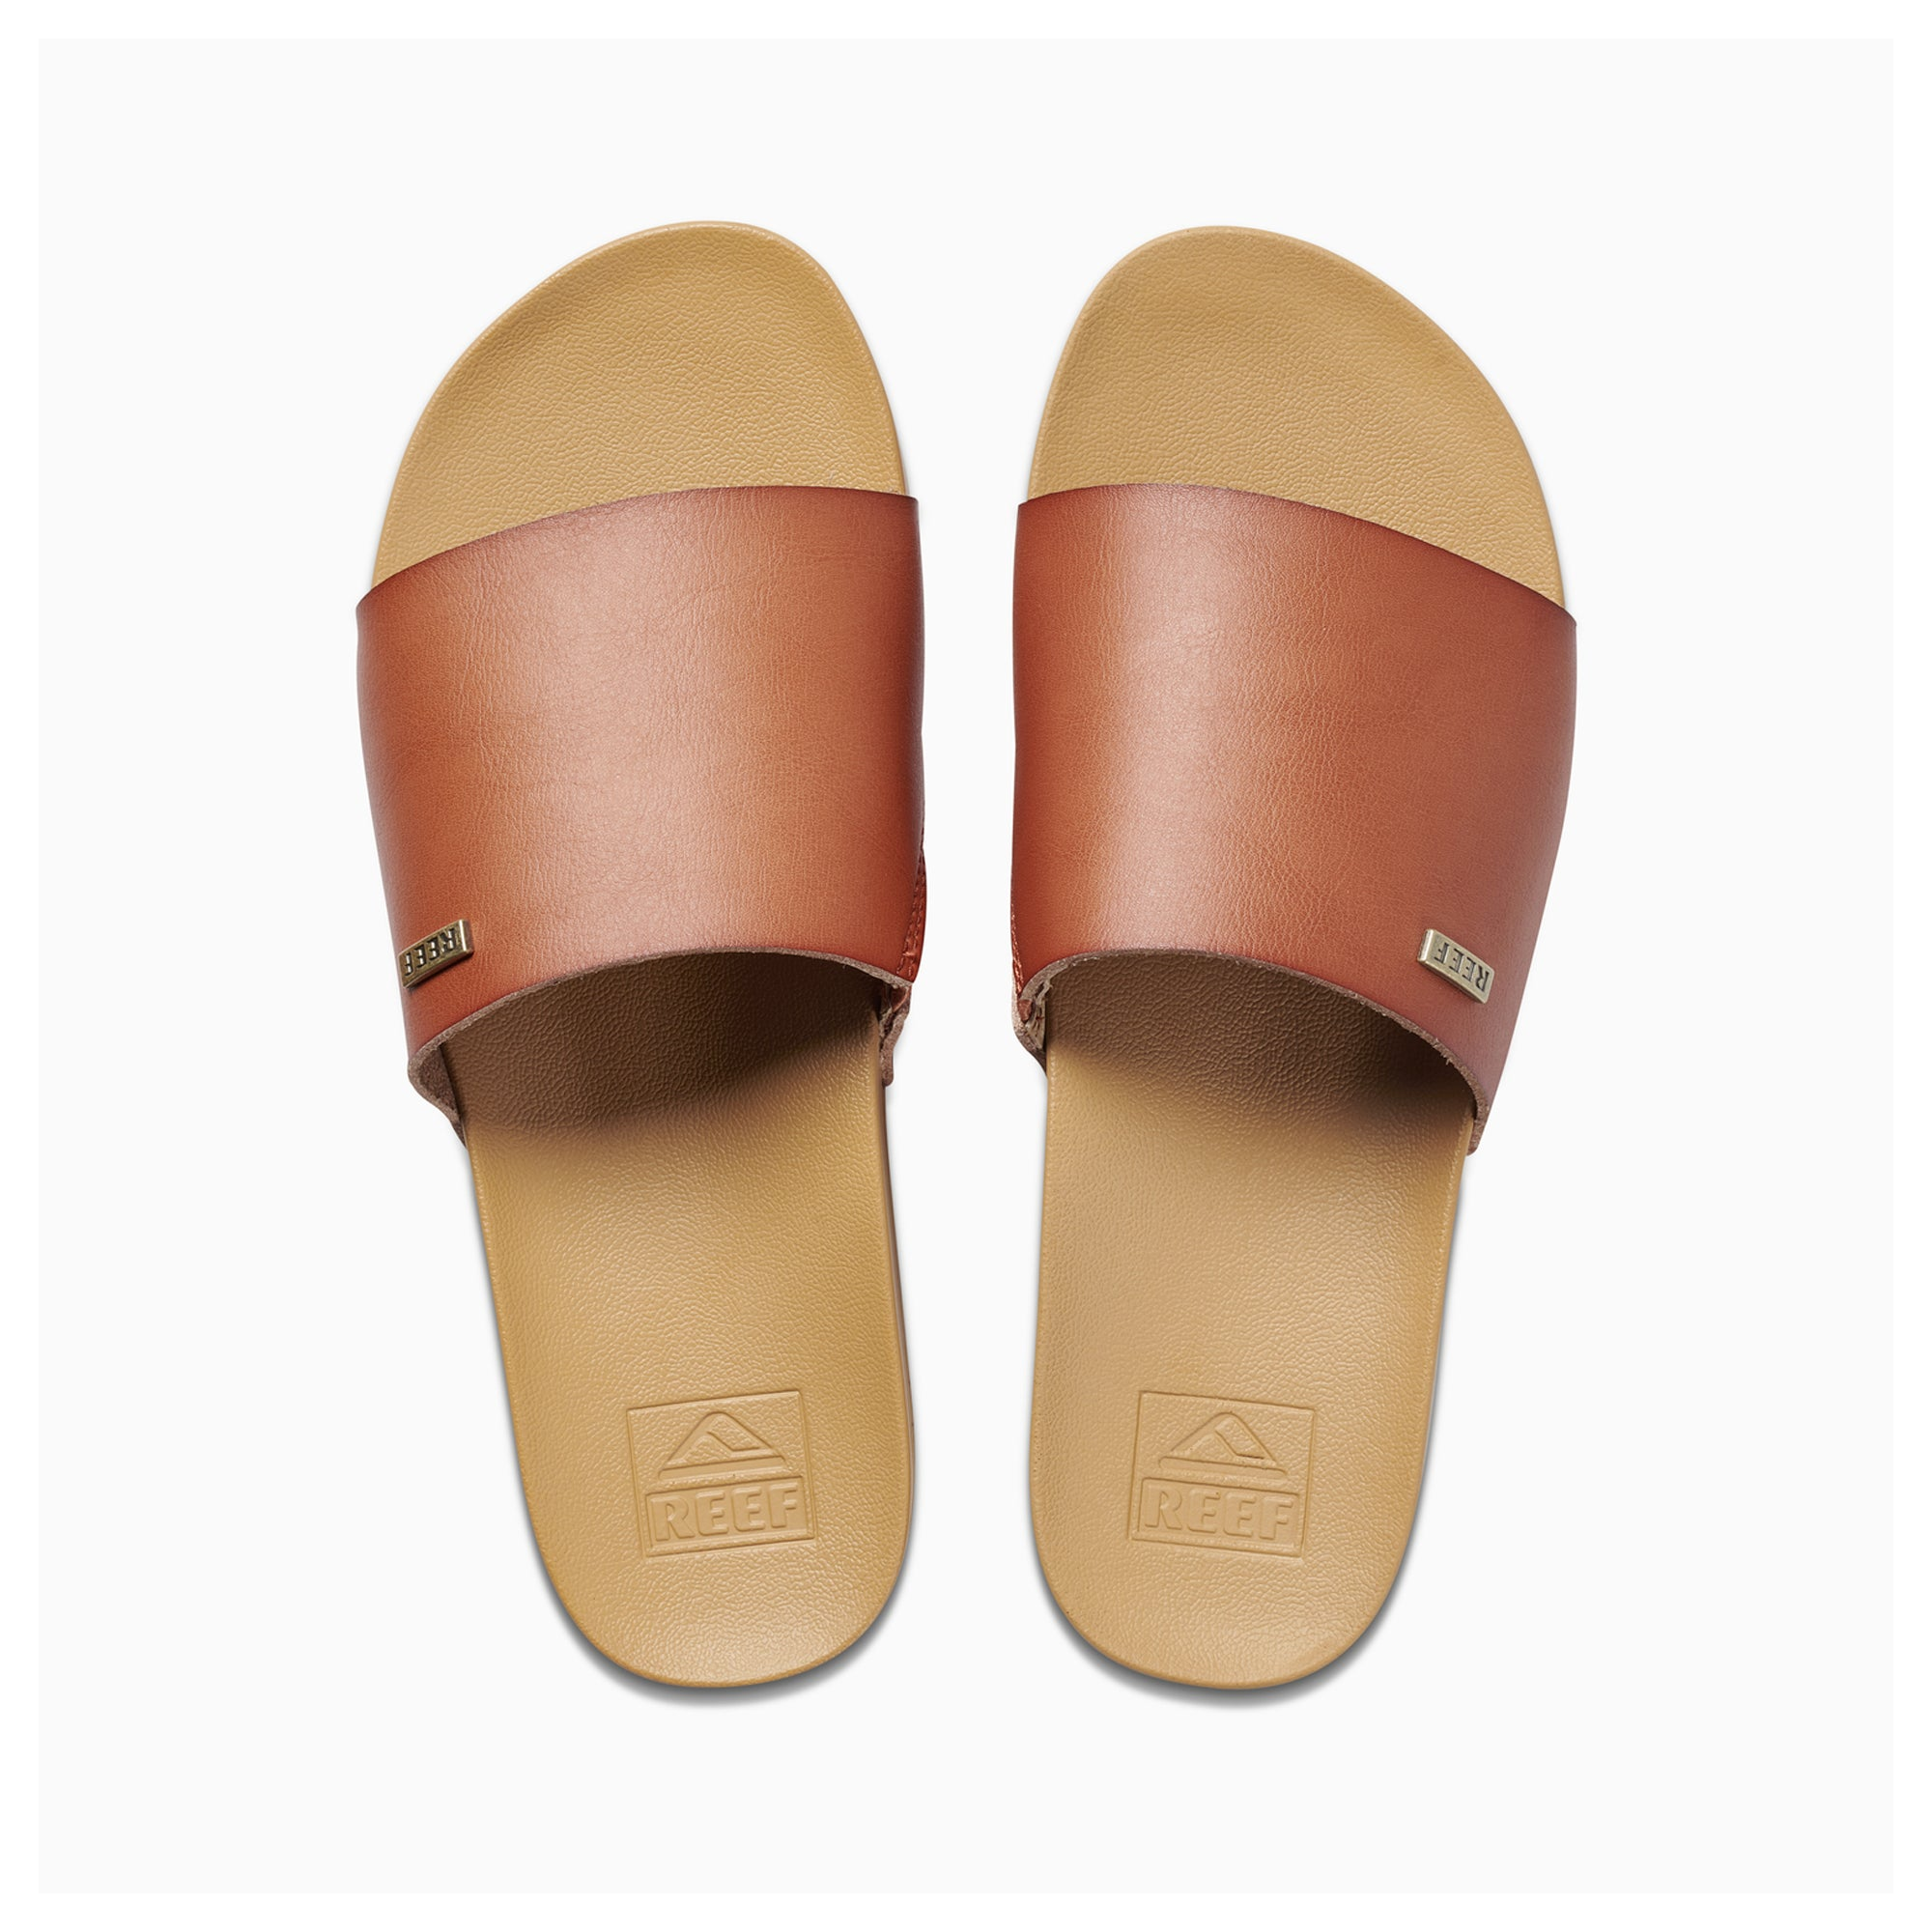 Reef Cushion Scout Women's Sandals